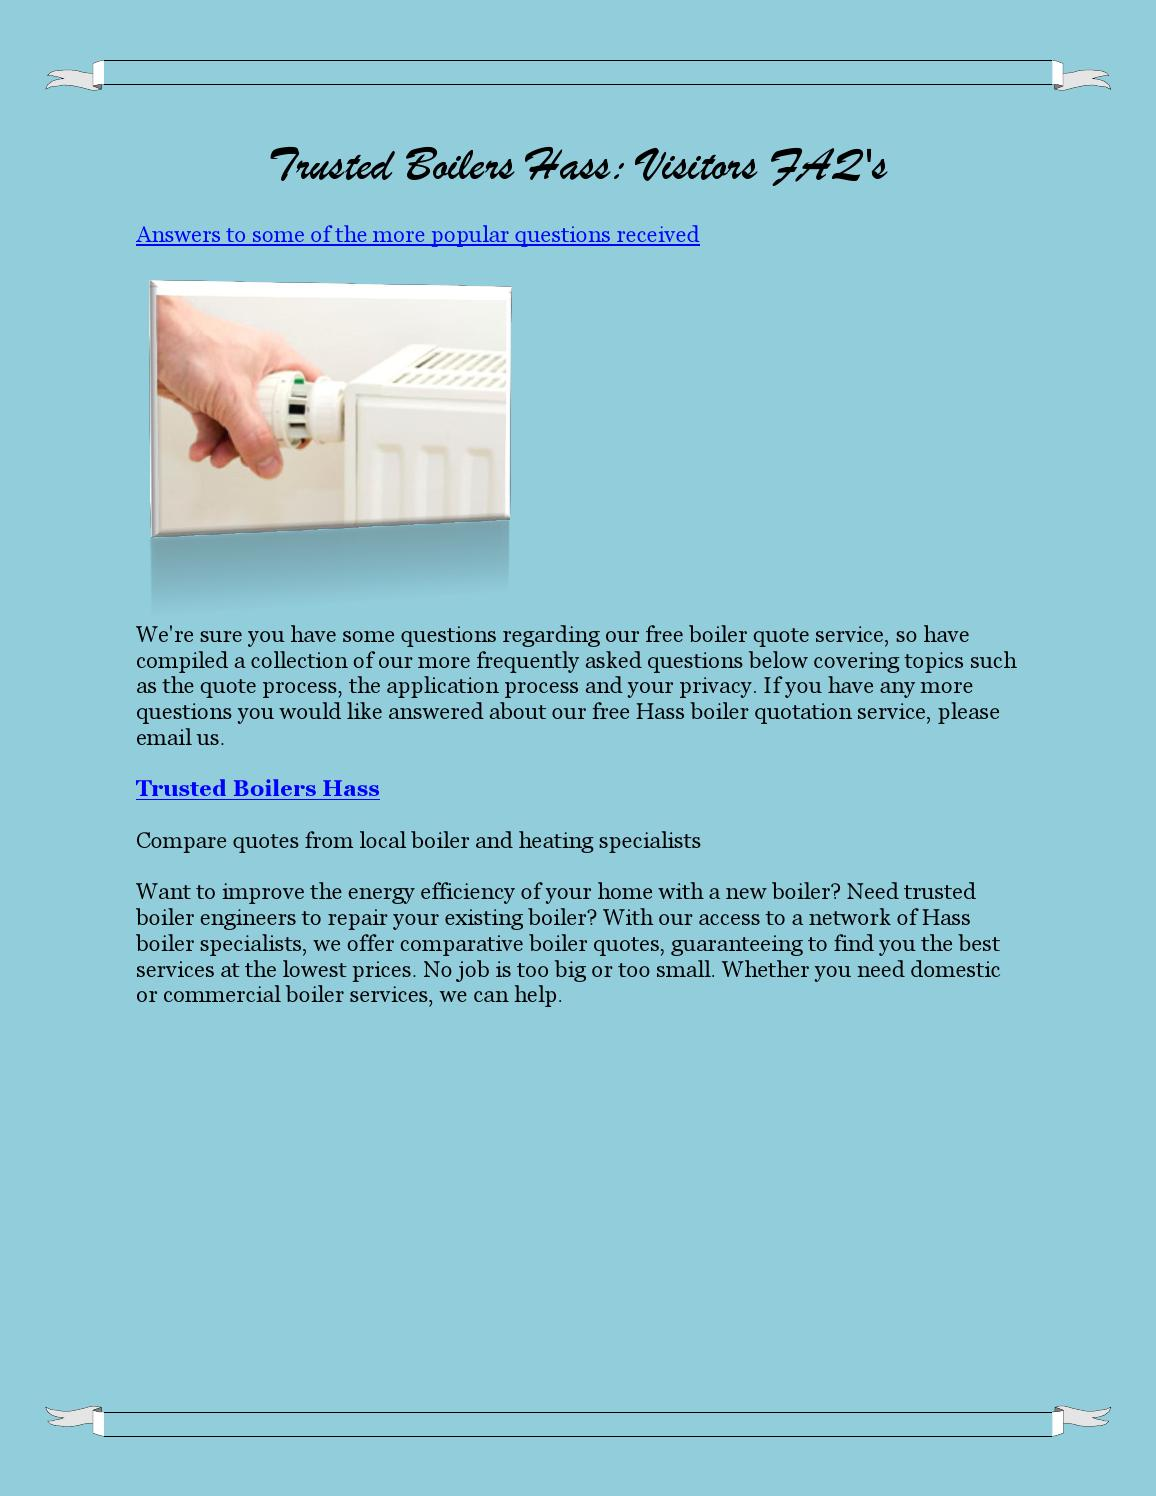 Trusted boilers hass visitors faq\'s by Cailin Maclntyre - issuu